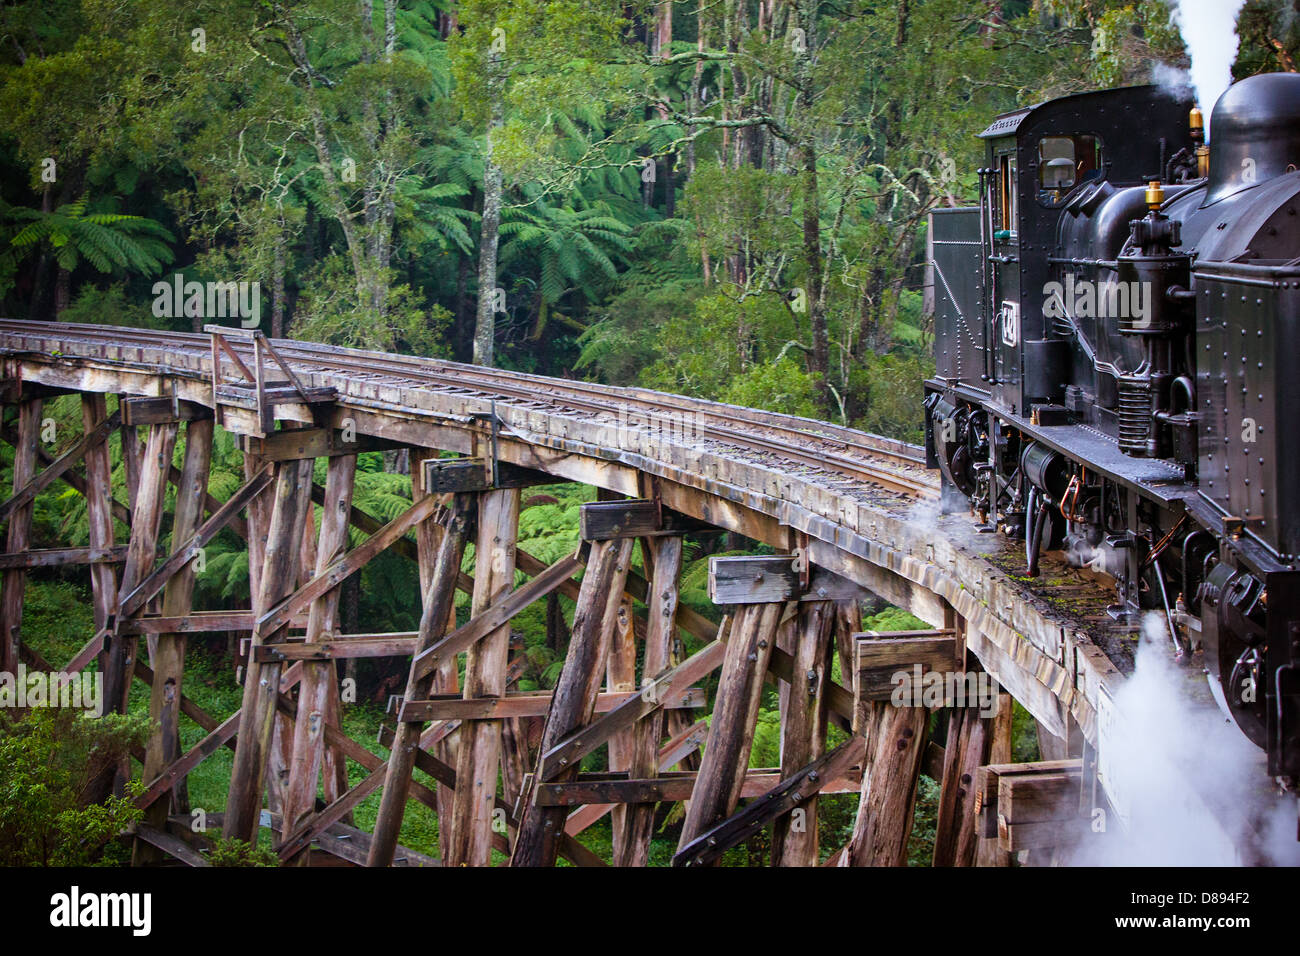 Puffing Billy steam train travels across an old wooden bridge in Melbourne, Victoria, Australia - Stock Image